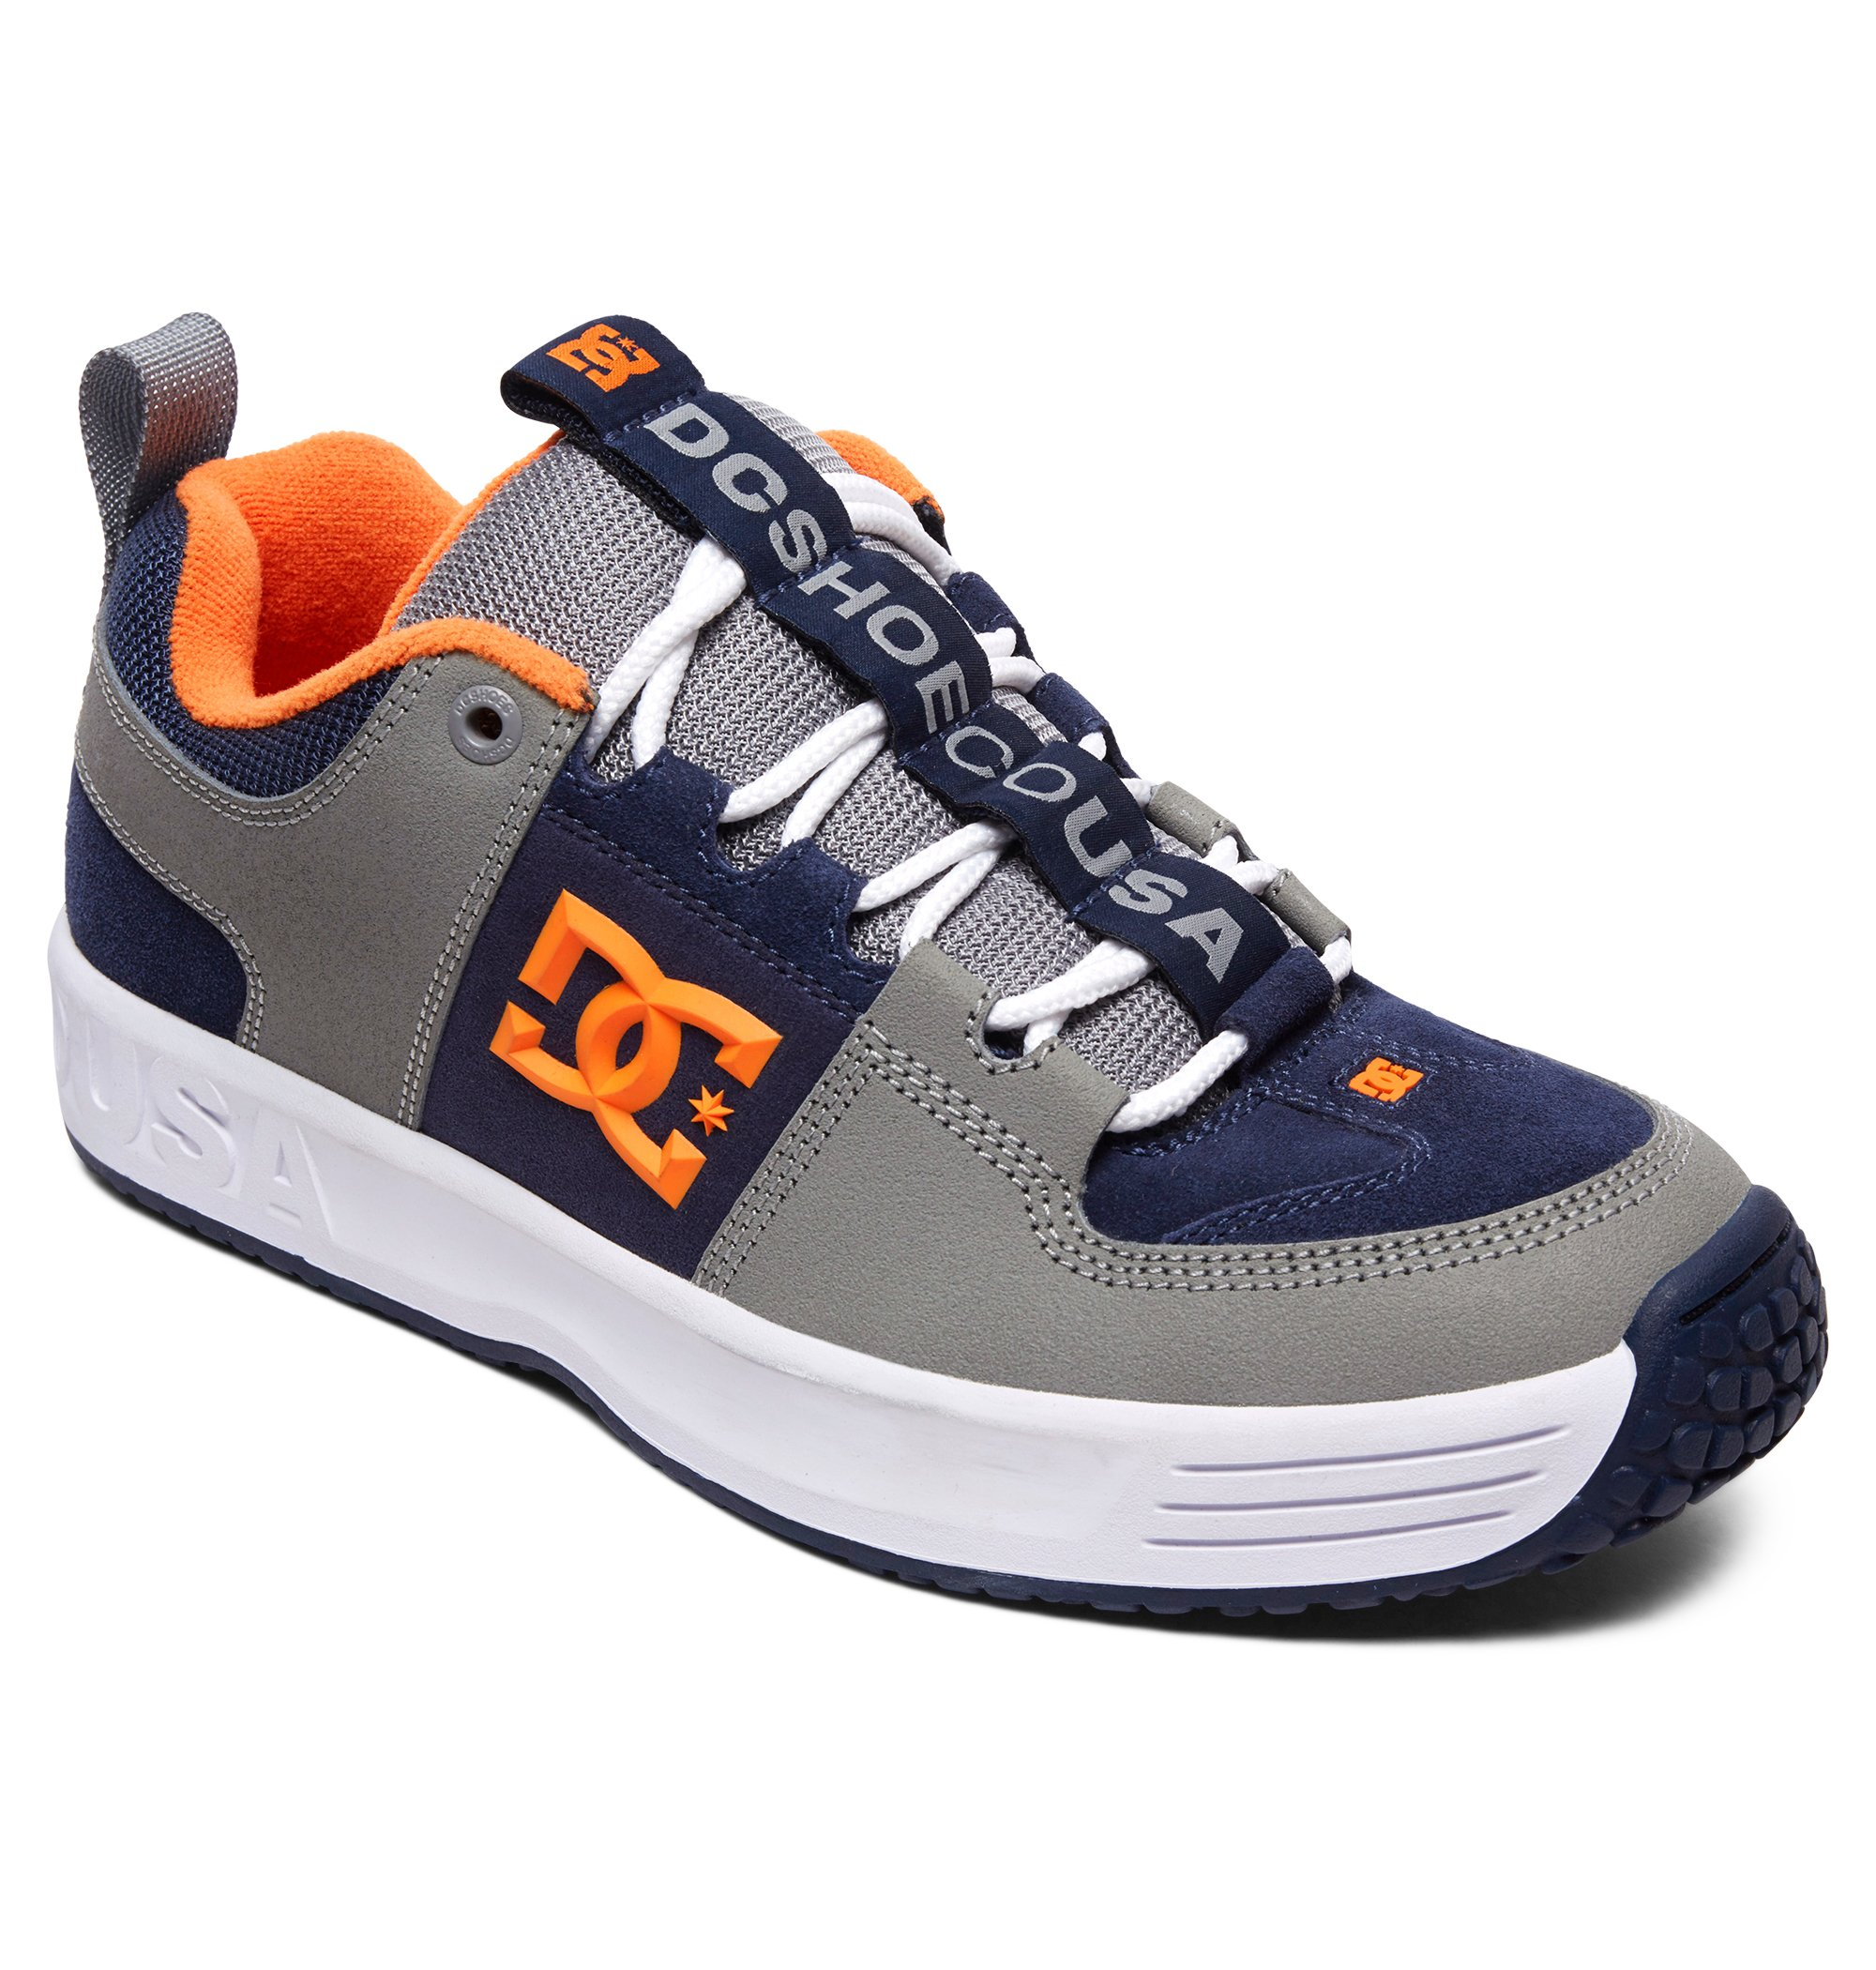 f92b49fa57 DC Lynx OG Skate Shoes at Salty Peaks